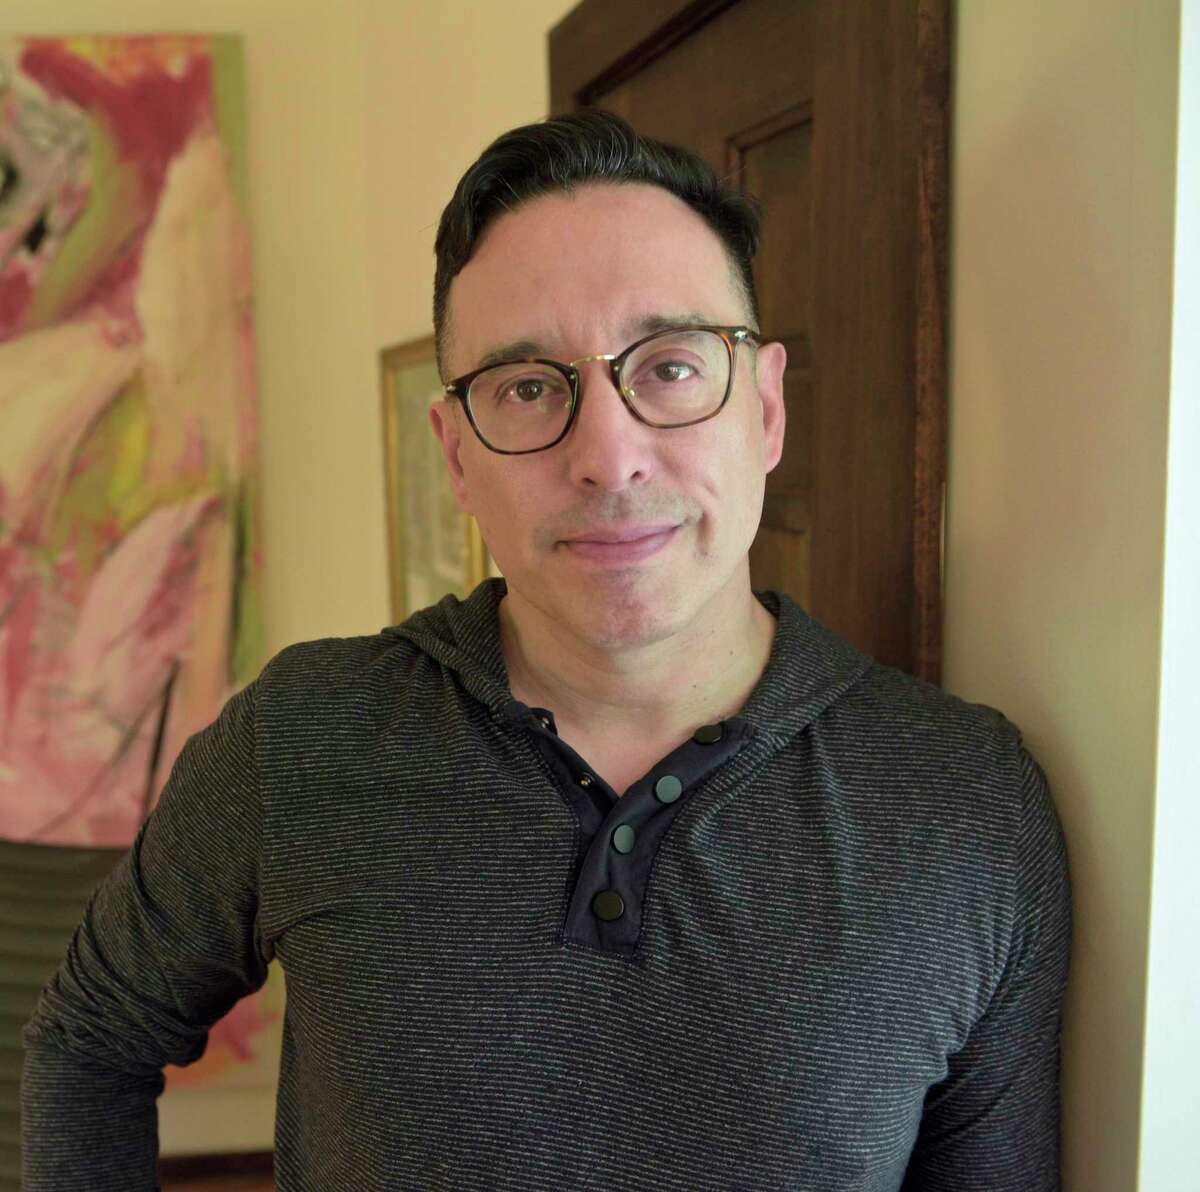 Fernando Luis Alvarez, owner of the former Stamford art gallery of the same name and co-creator of the Spoon Movement, which aims to raise awareness about the opioid crisis. Monday, July 22, 2019, in Redding, Conn.